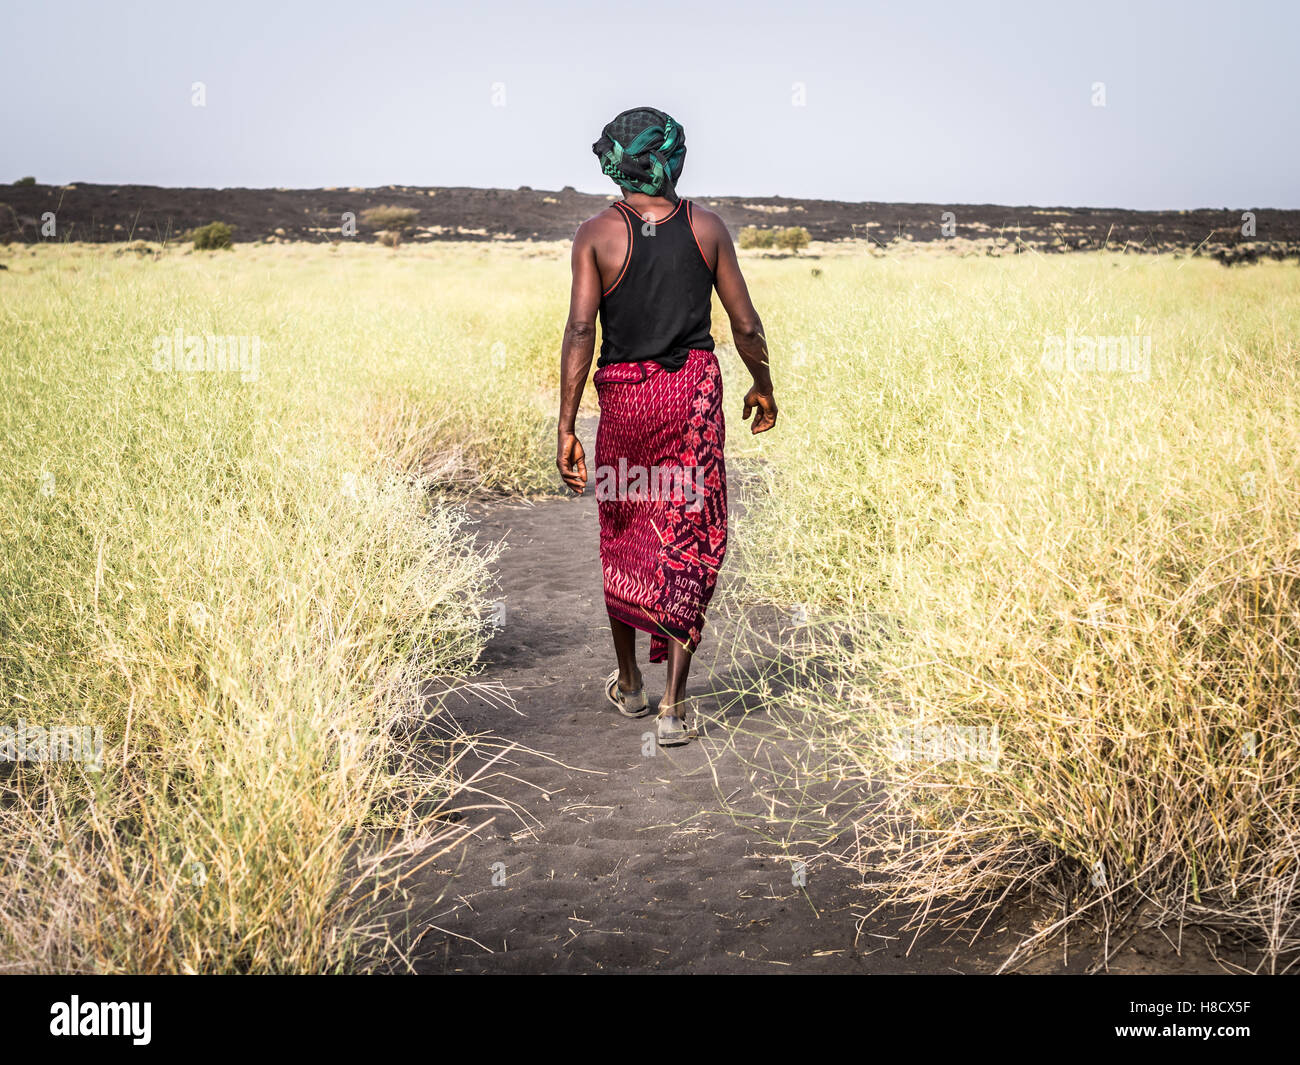 Local tourist guide leading a group down from Erta Ale active volcano in Afar Region in Ethiopia, Africa. - Stock Image